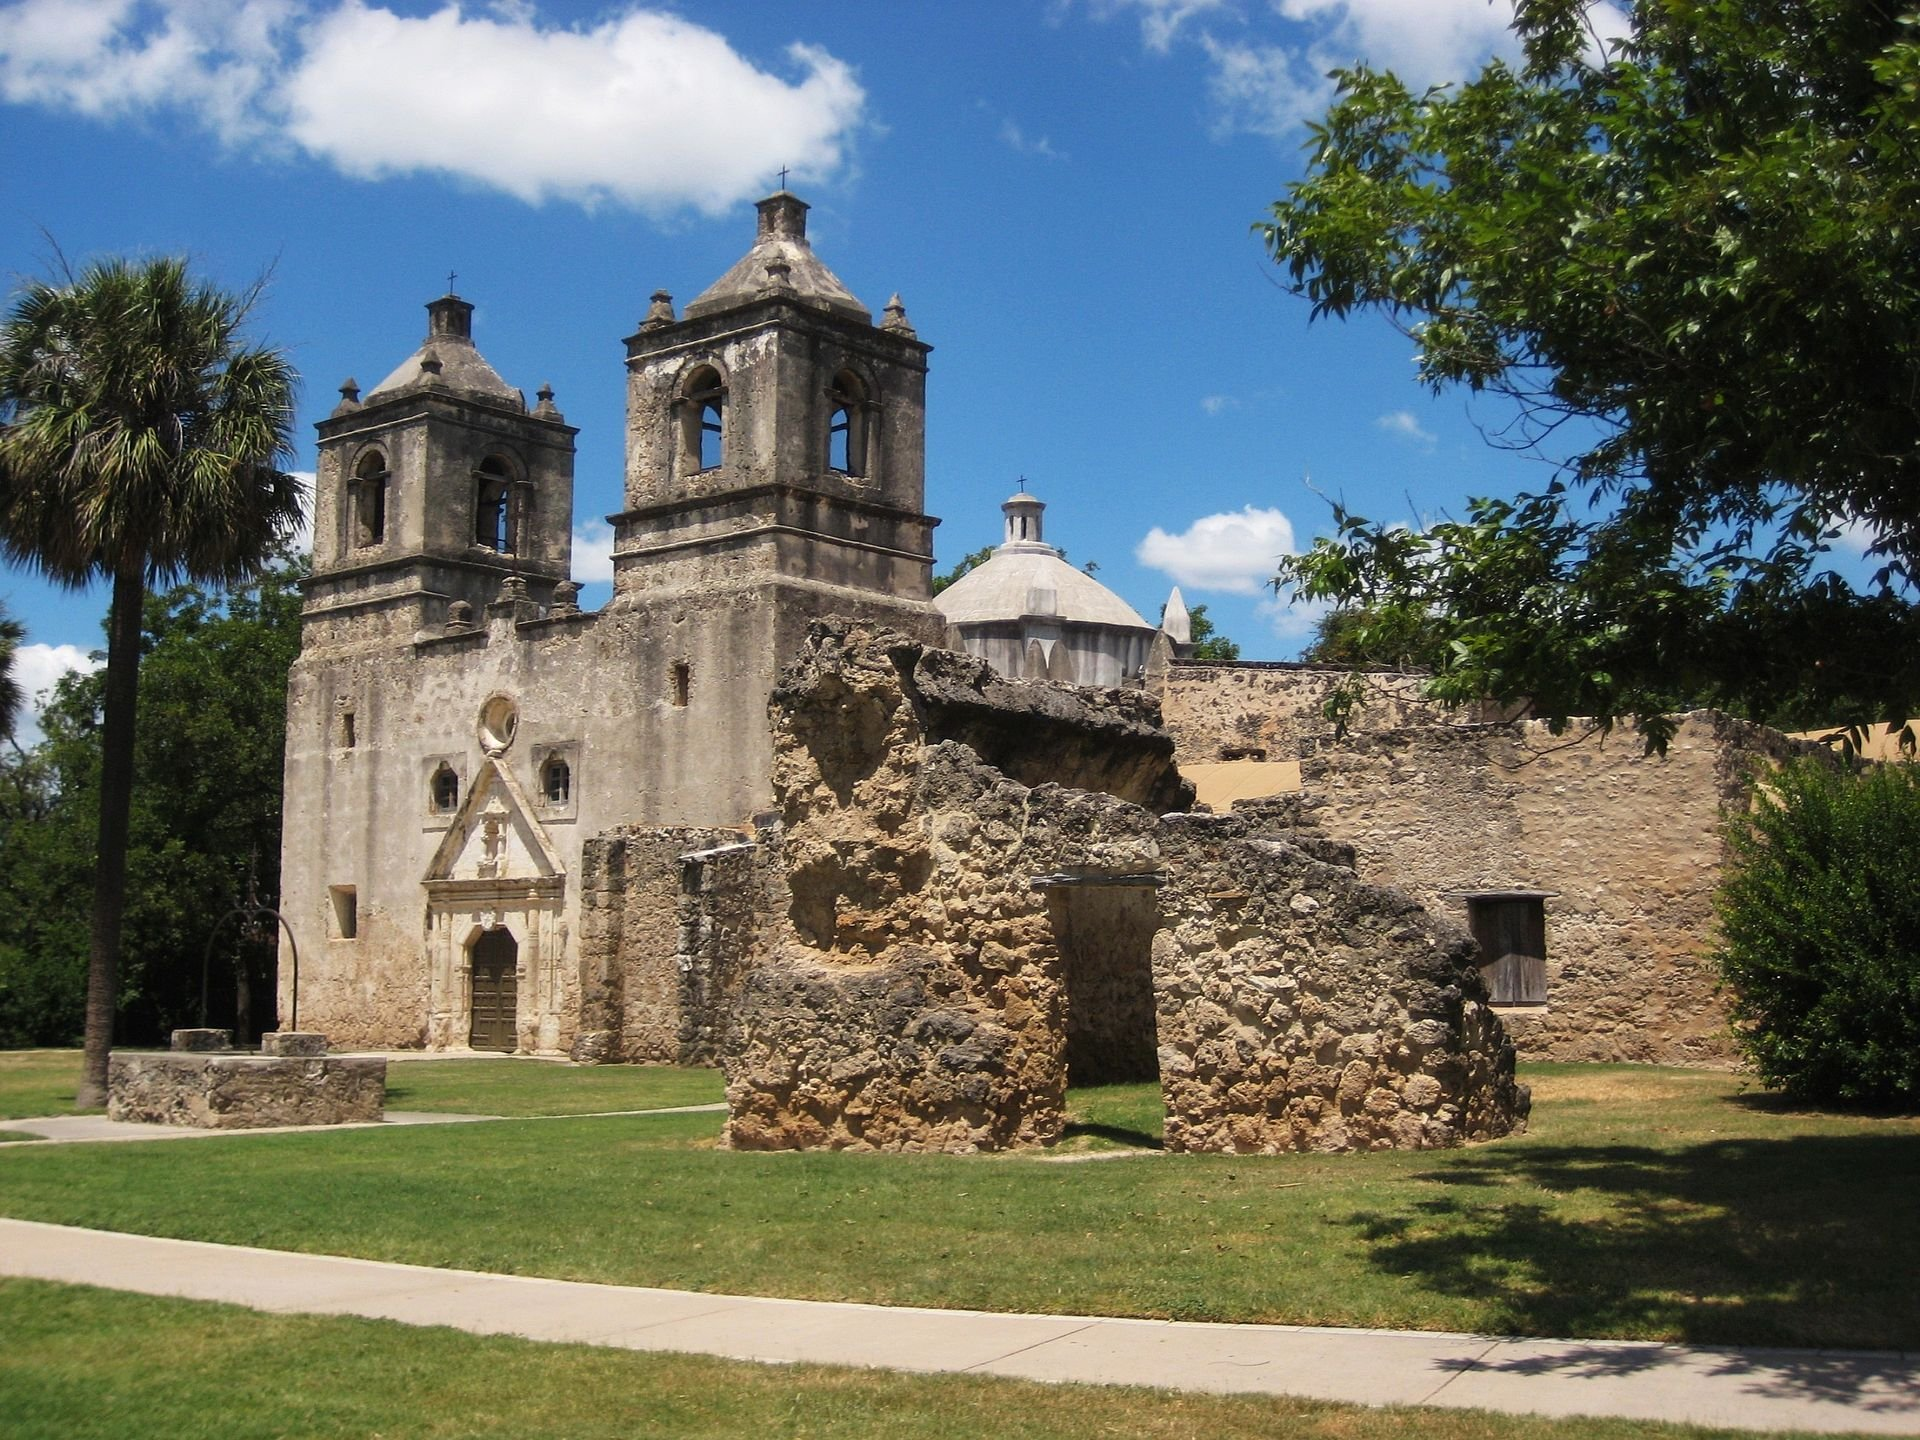 Mission Concepción church is the oldest unrestored church structure in the country.